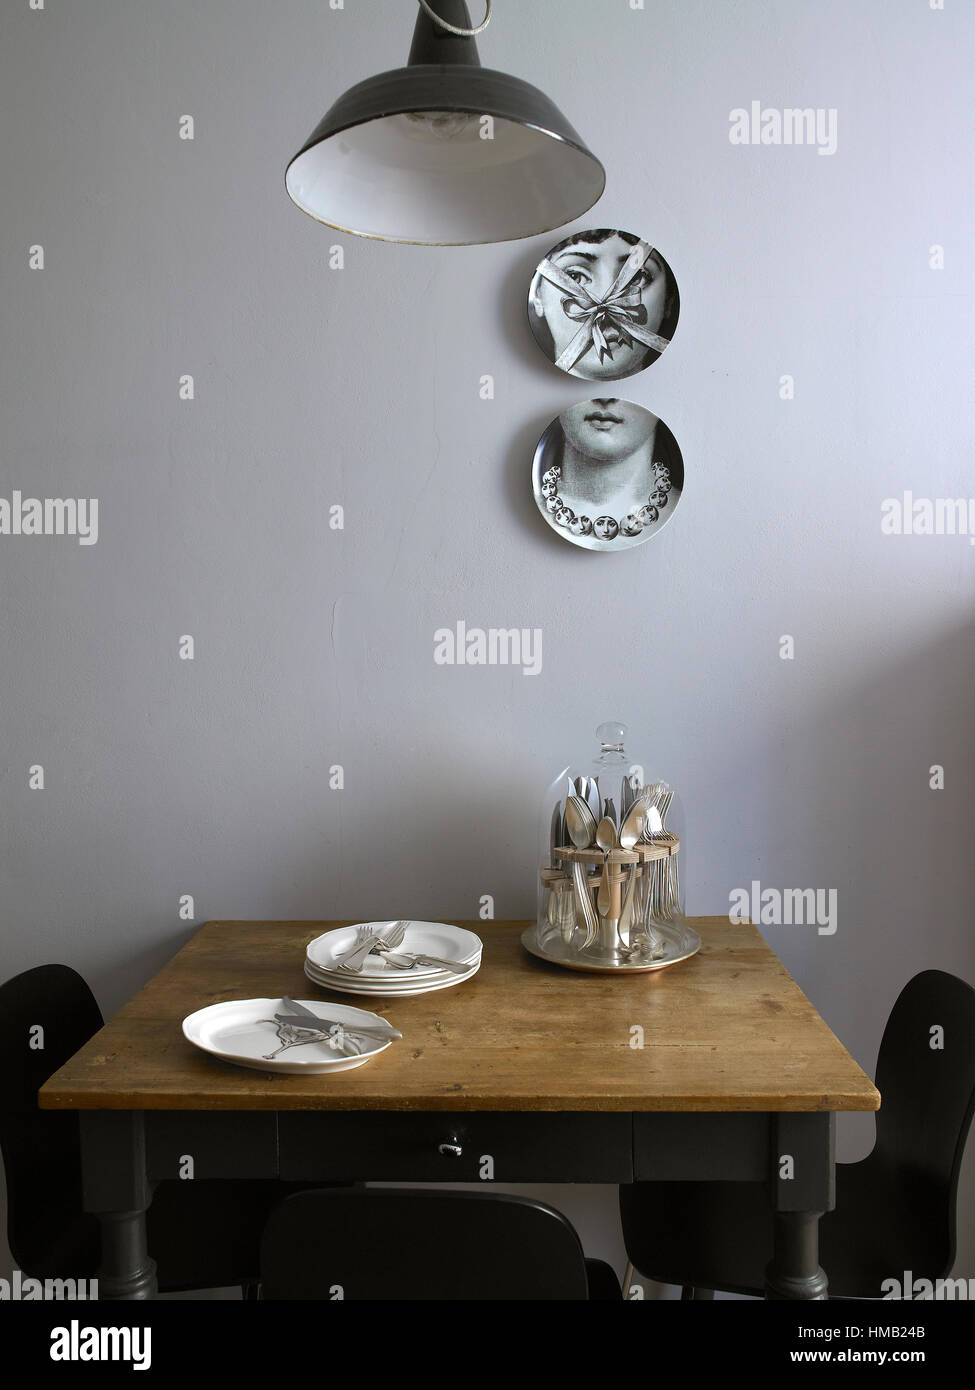 Interior of a house,  a small table set up, kitchen with Fornasetti dishes on the wall - Stock Image